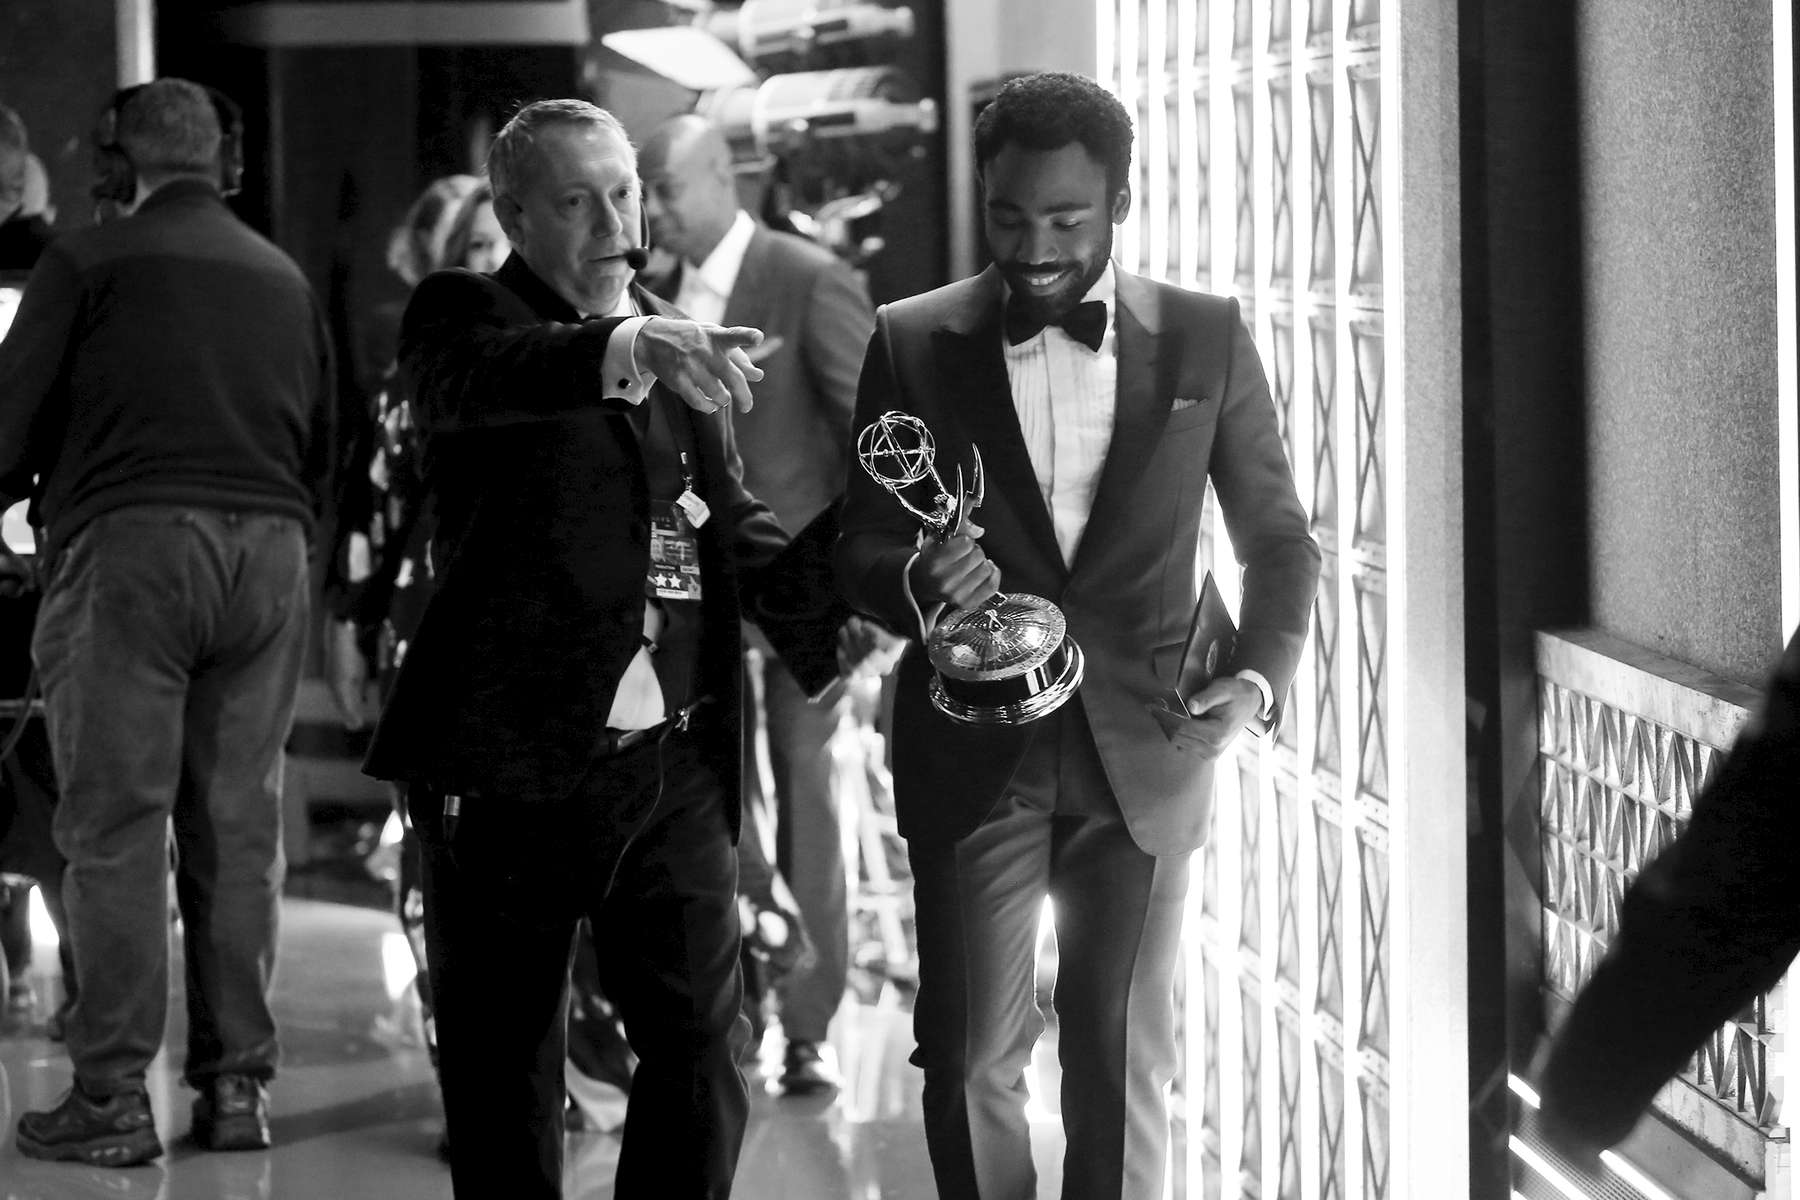 Donald Glover appears backstage at the 69th Primetime Emmy Awards on Sunday, Sept. 17, 2017, at the Microsoft Theater in Los Angeles. (Photo by Matt Sayles/Invision for the Television Academy/AP Images)